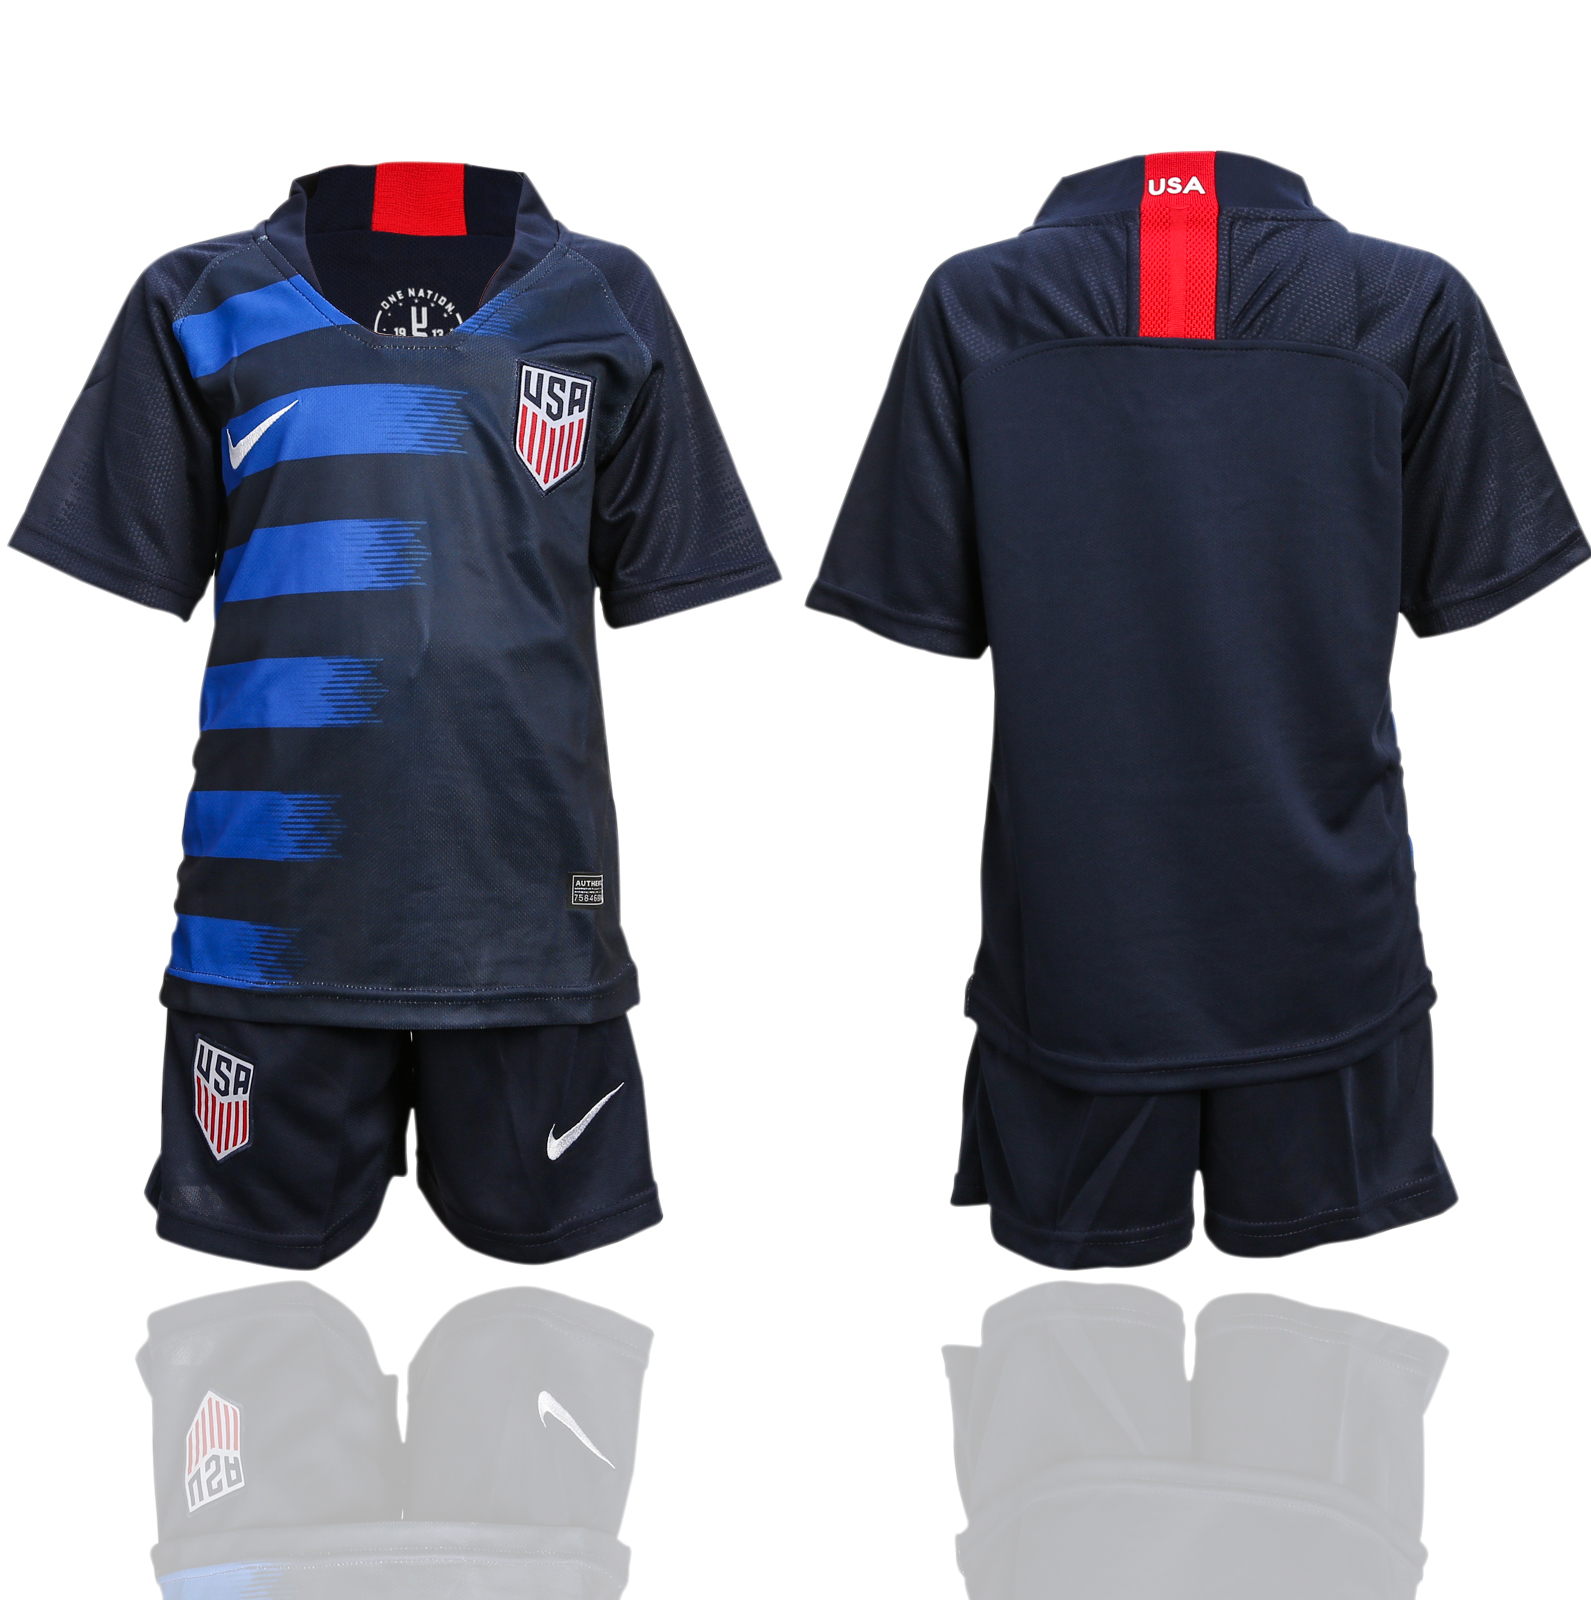 2018-2019 national America away youth soccer jerseys